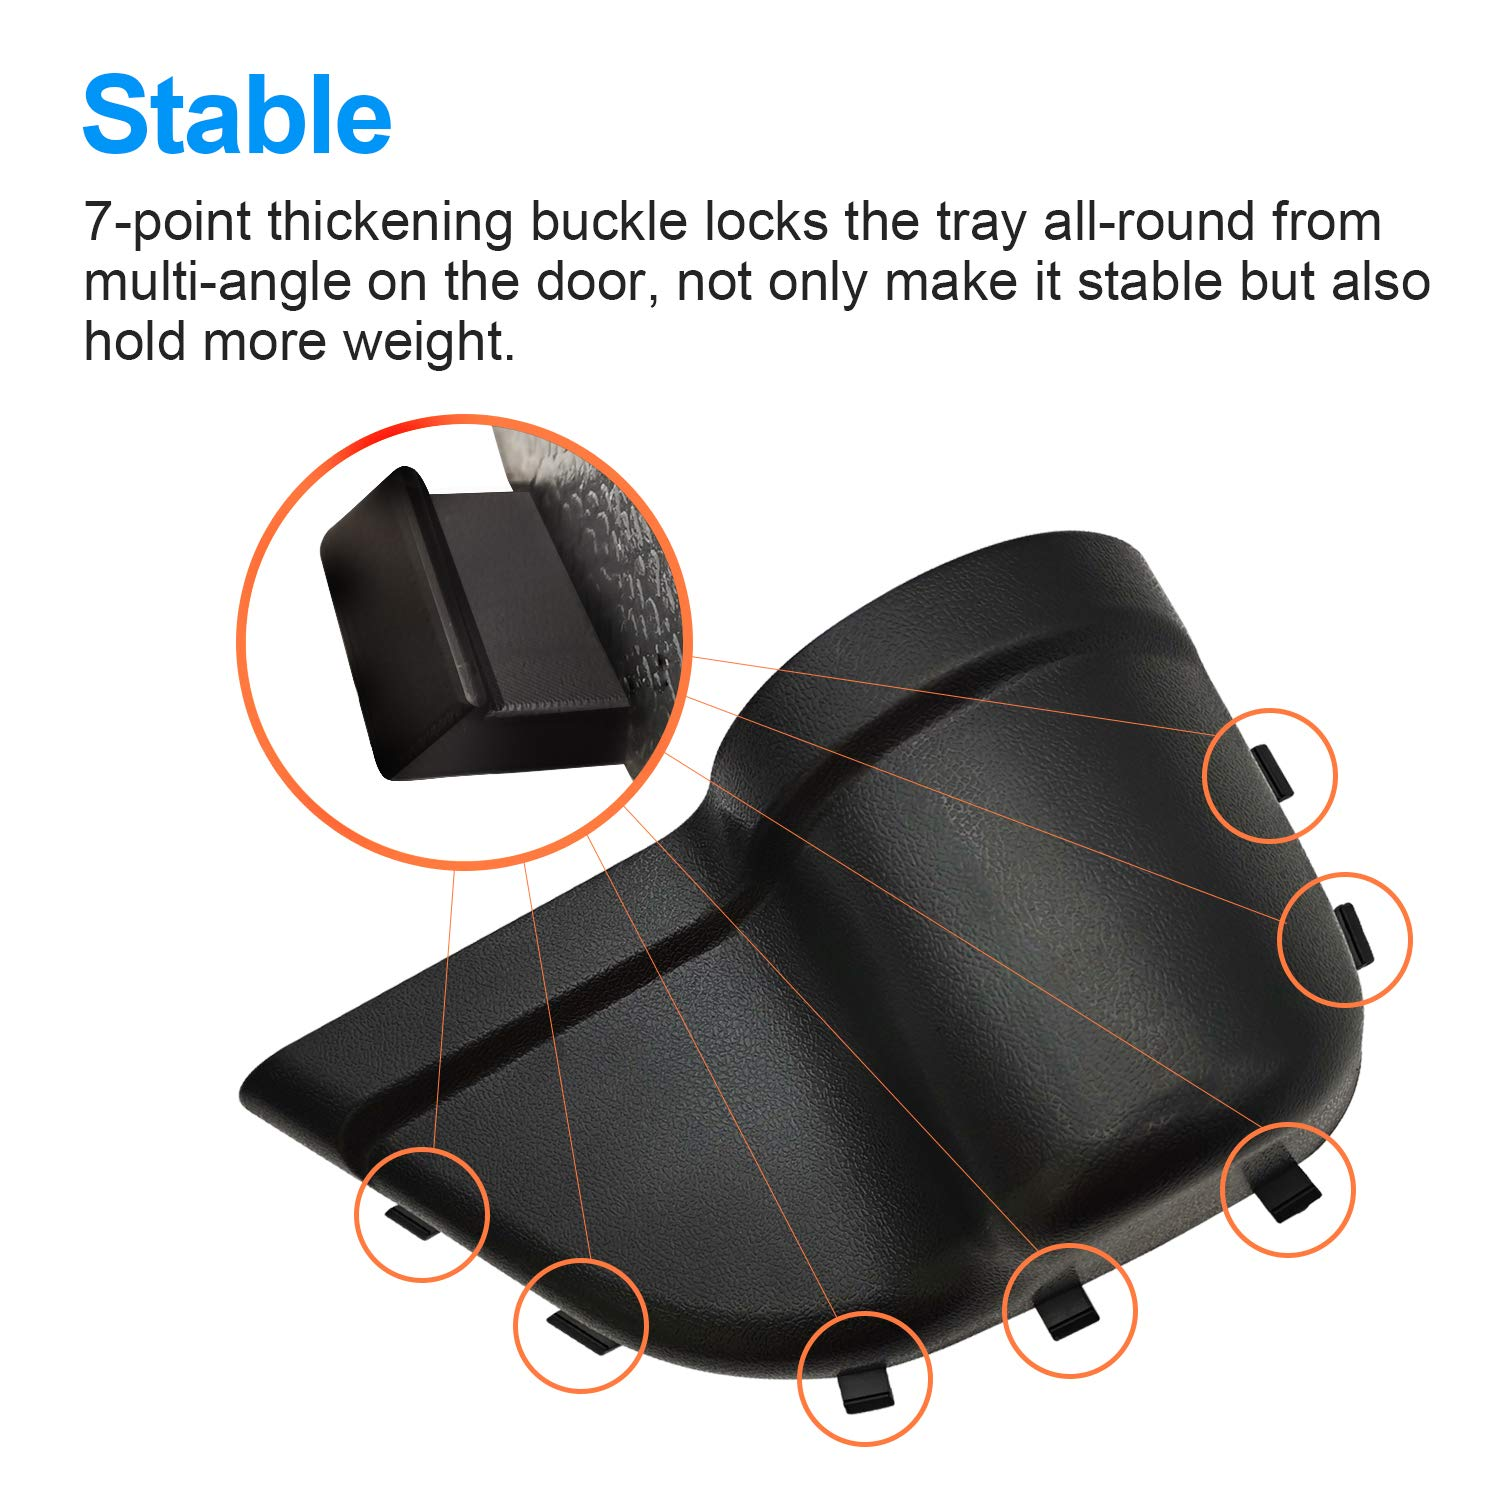 Black Interior Accessories JOINT STARS Jeep JK Grab Tray Passenger Storage Tray Organizer /& DoorPocket Front Door Storage Pockets for 2011-2018 Jeep Wrangler JK JKU